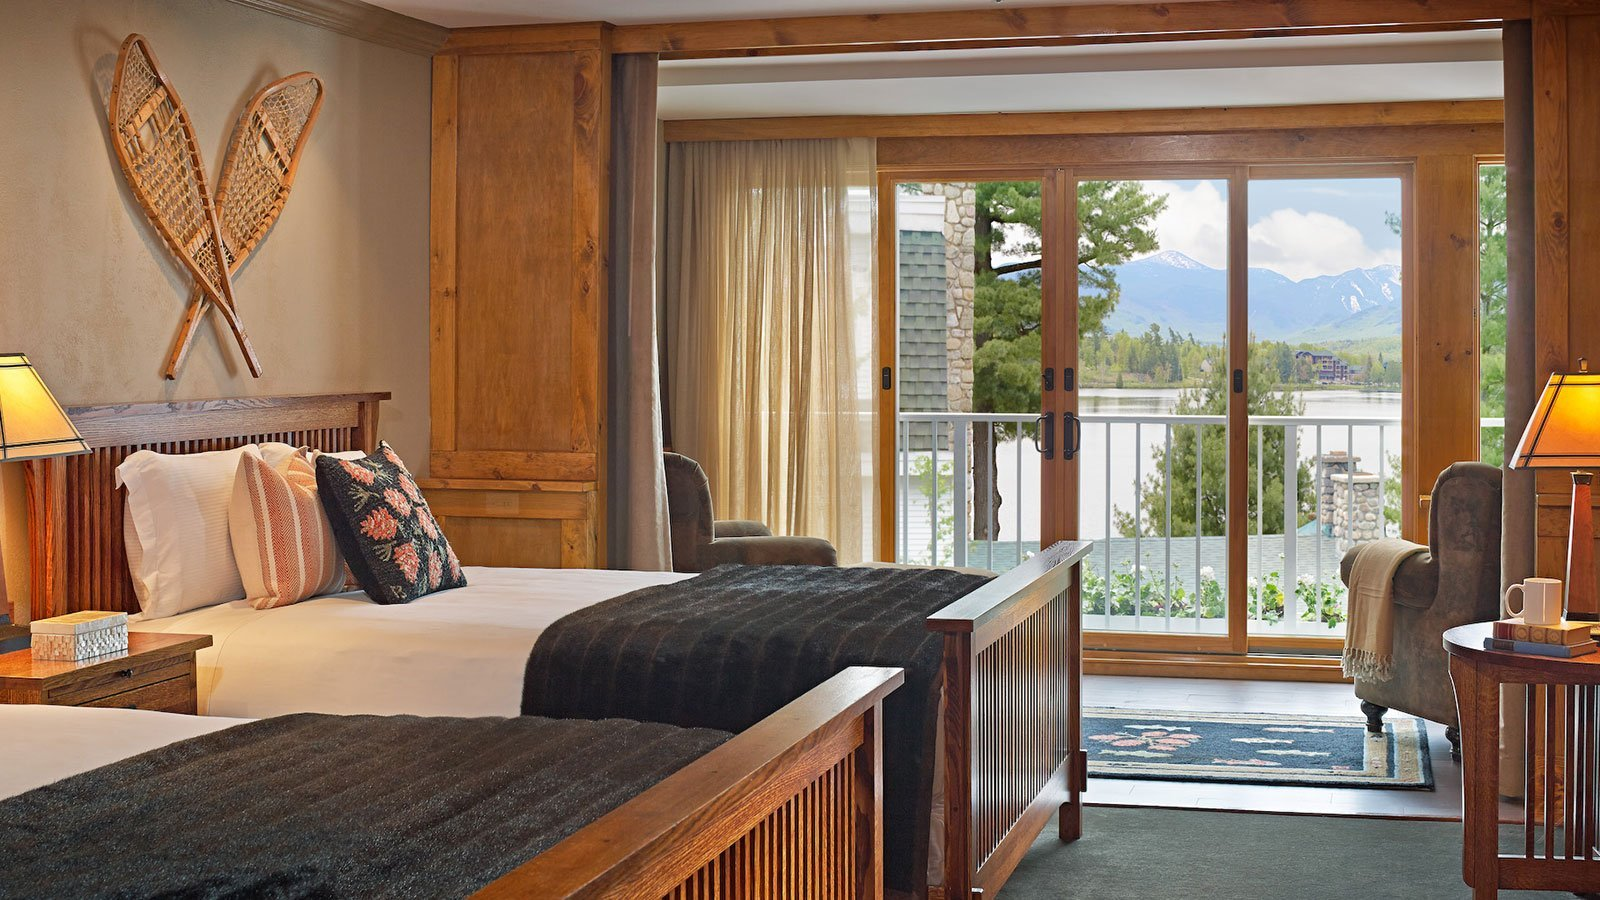 Two queen size beds with view of the lake